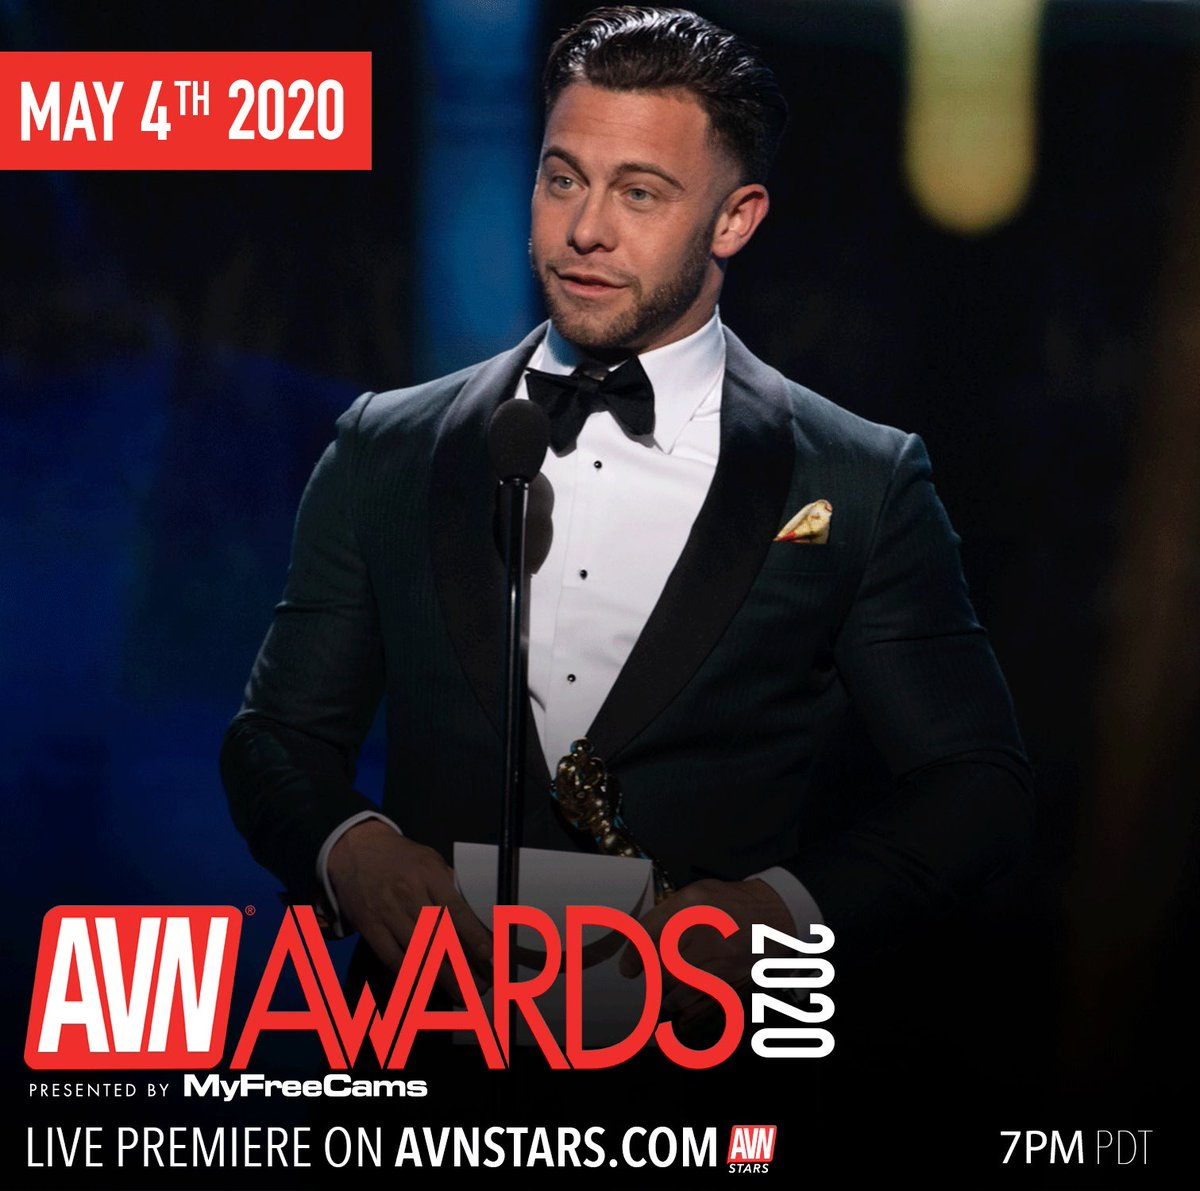 Our Best Leading Actor @sethgamblexxx will be there tonight at the Live Premiere of the AVNAwards. How about you? Stars.avn.com/AVNAwards